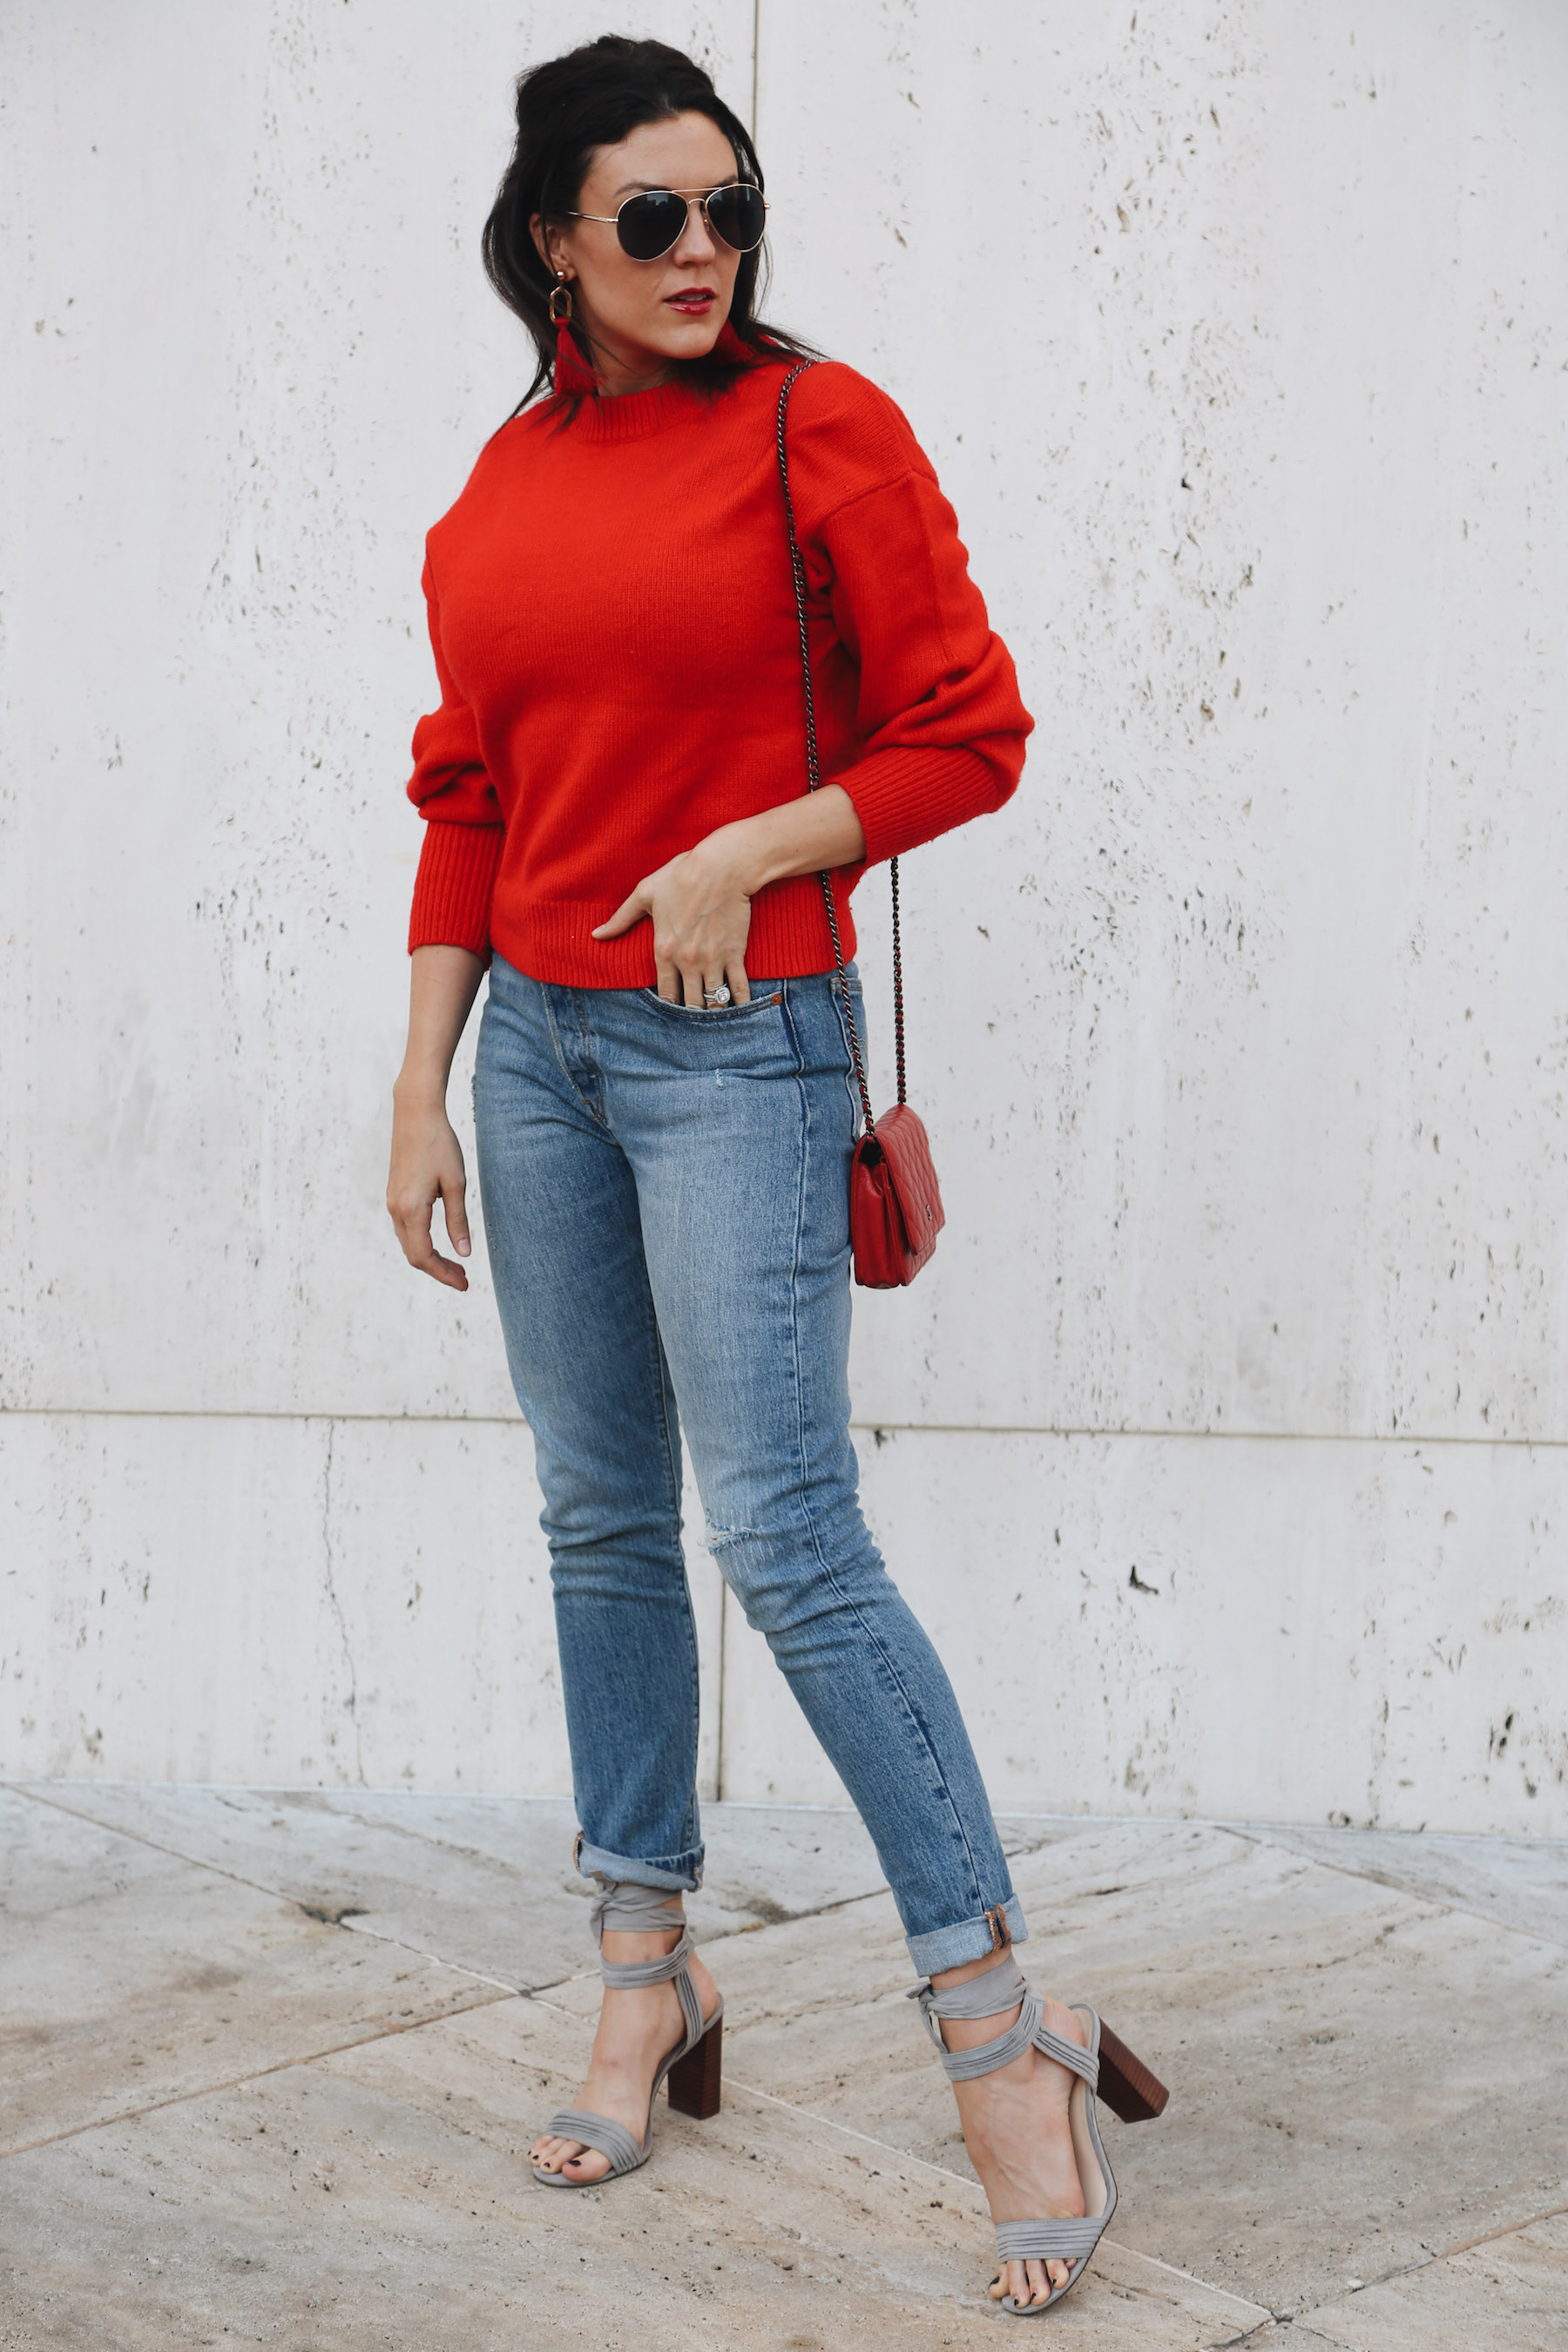 A Casual Holiday Outfit Red Sweater Jeans Runway Chef